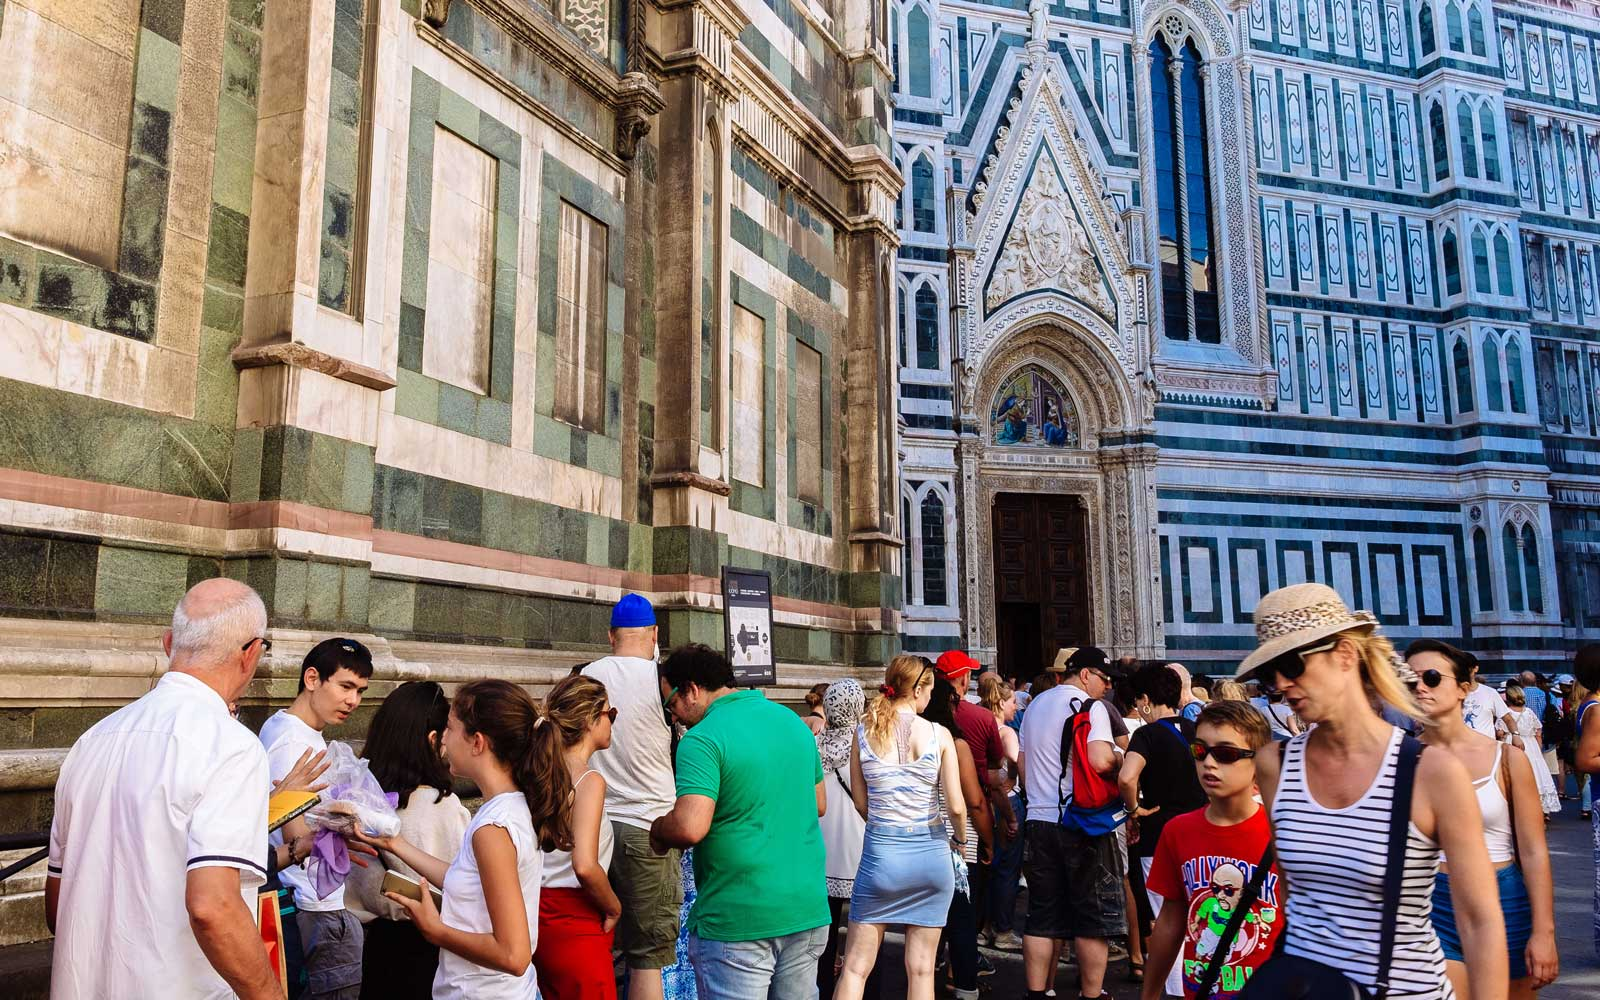 Italian Tenant Union Says Vacation Rentals Push 1,000 Residents Out of Florence Each Year